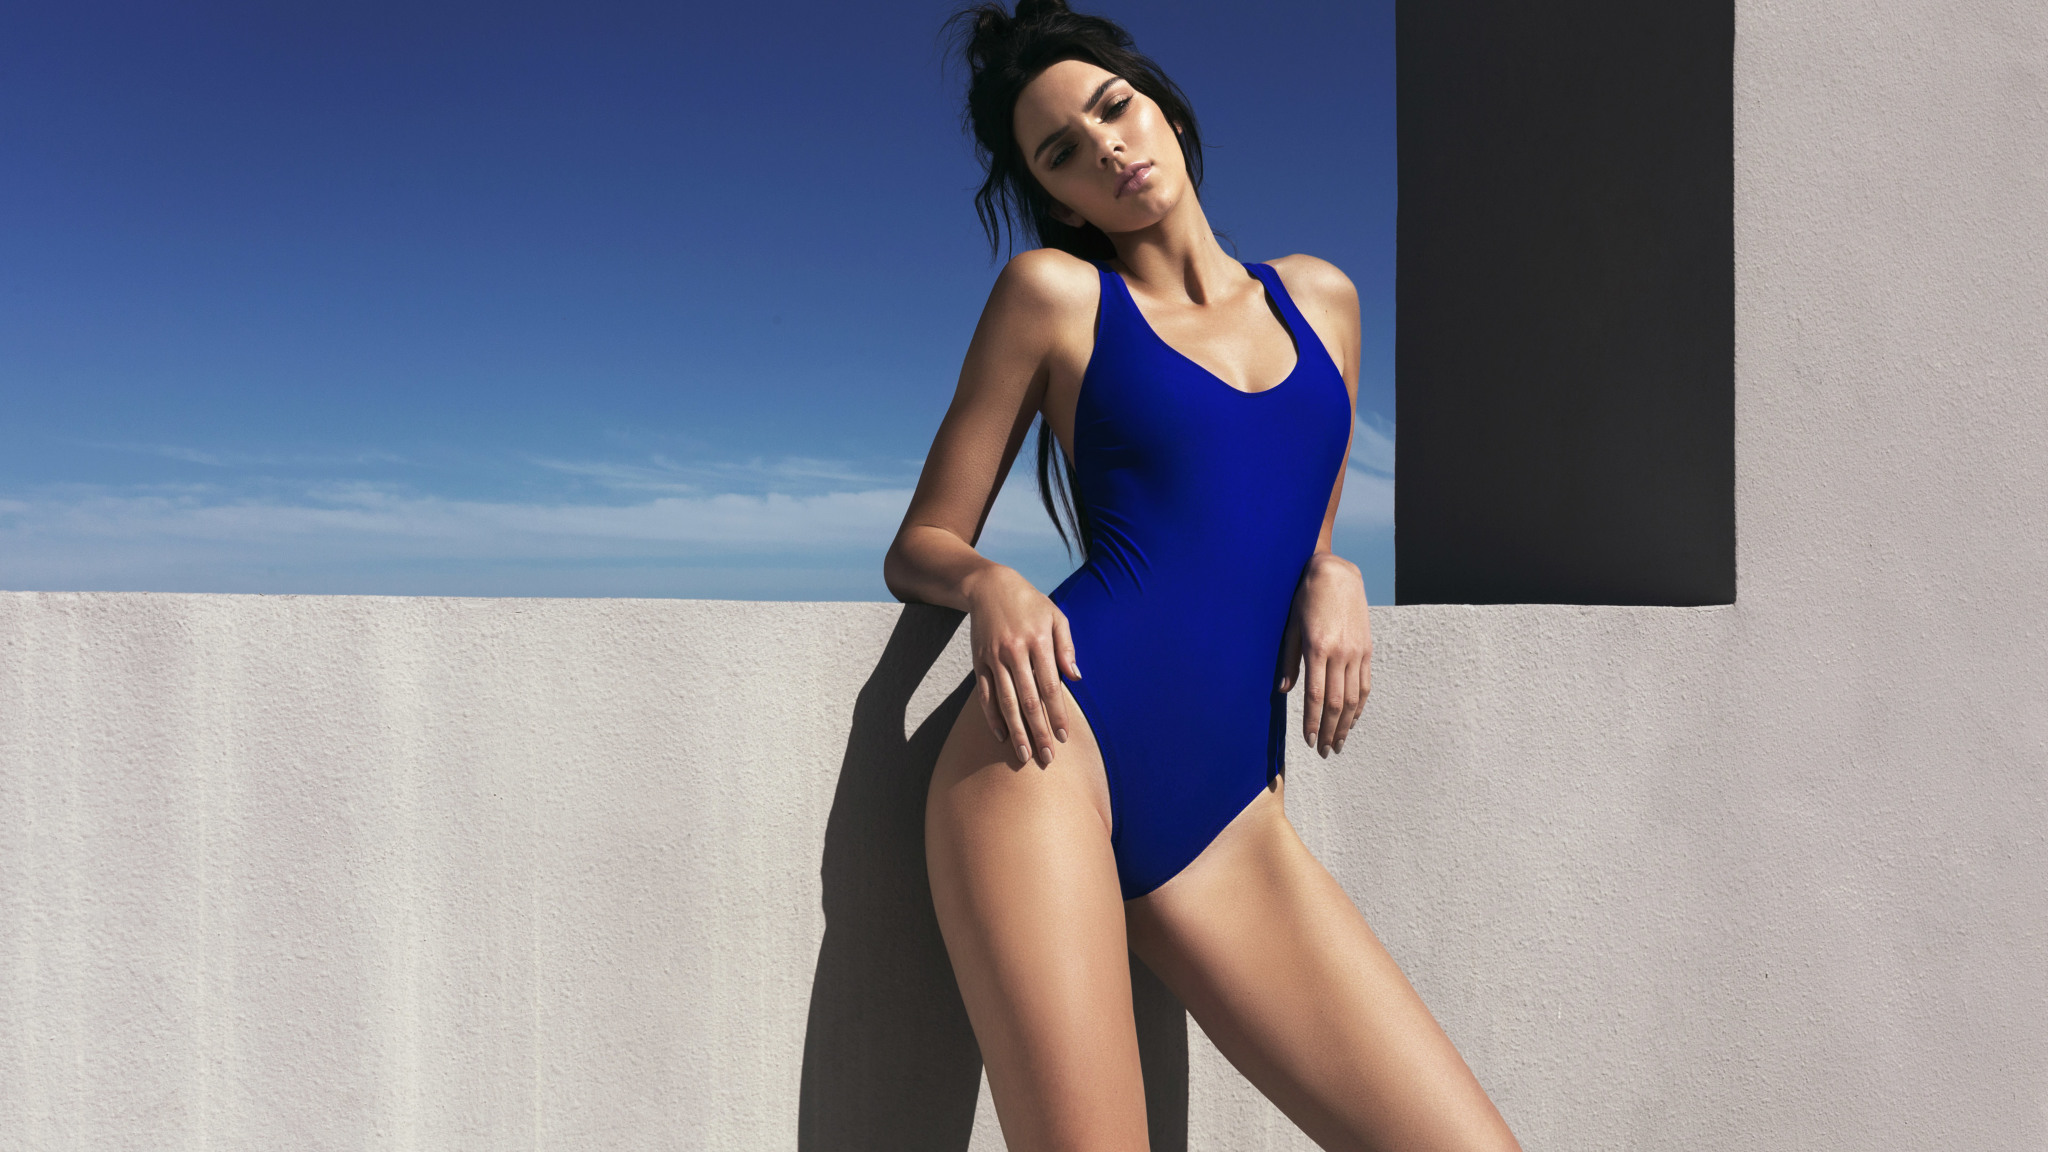 2048x1152 Kendall Jenner SwimSuit 2048x1152 Resolution Wallpaper 2048x1152